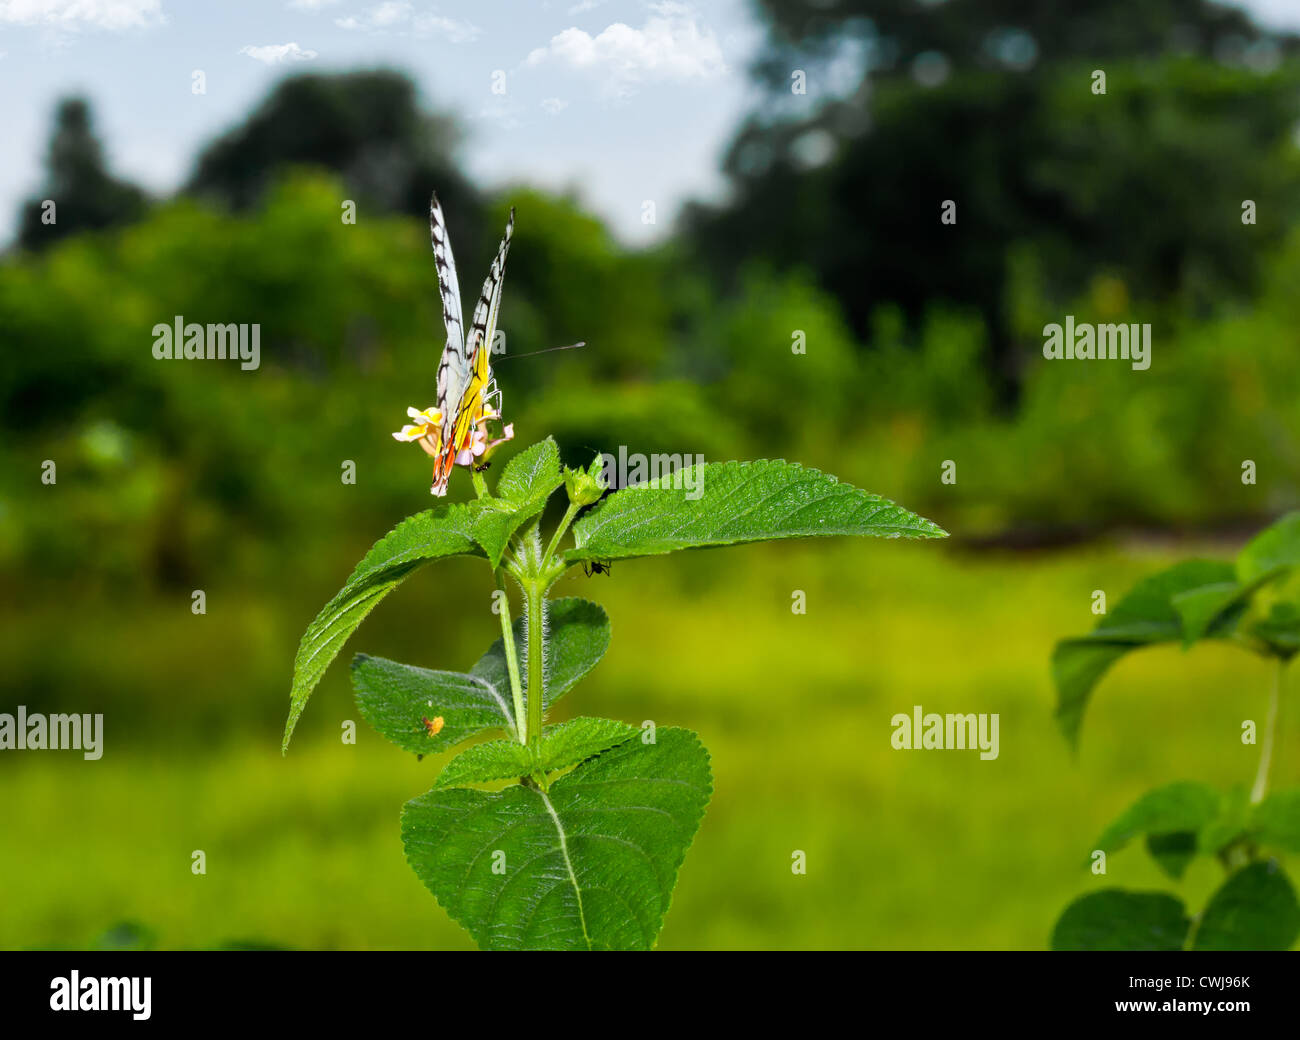 Butterfly, Common Jezebel, Delias eucharis, sucking honey from flower, pollinate, landscape, copy space - Stock Image